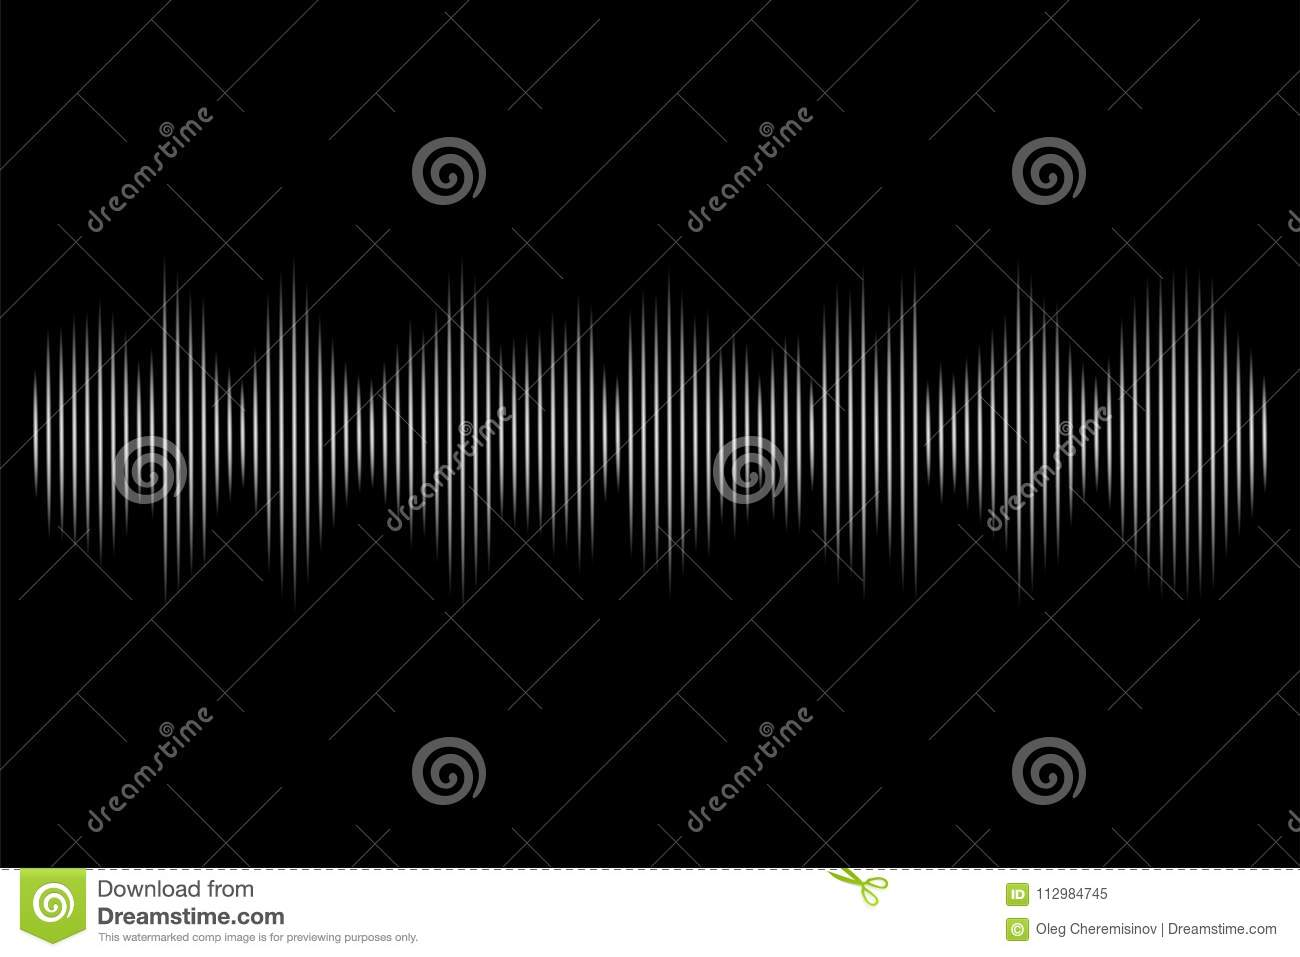 White sound wave on black background. Vector audio technology illustration.